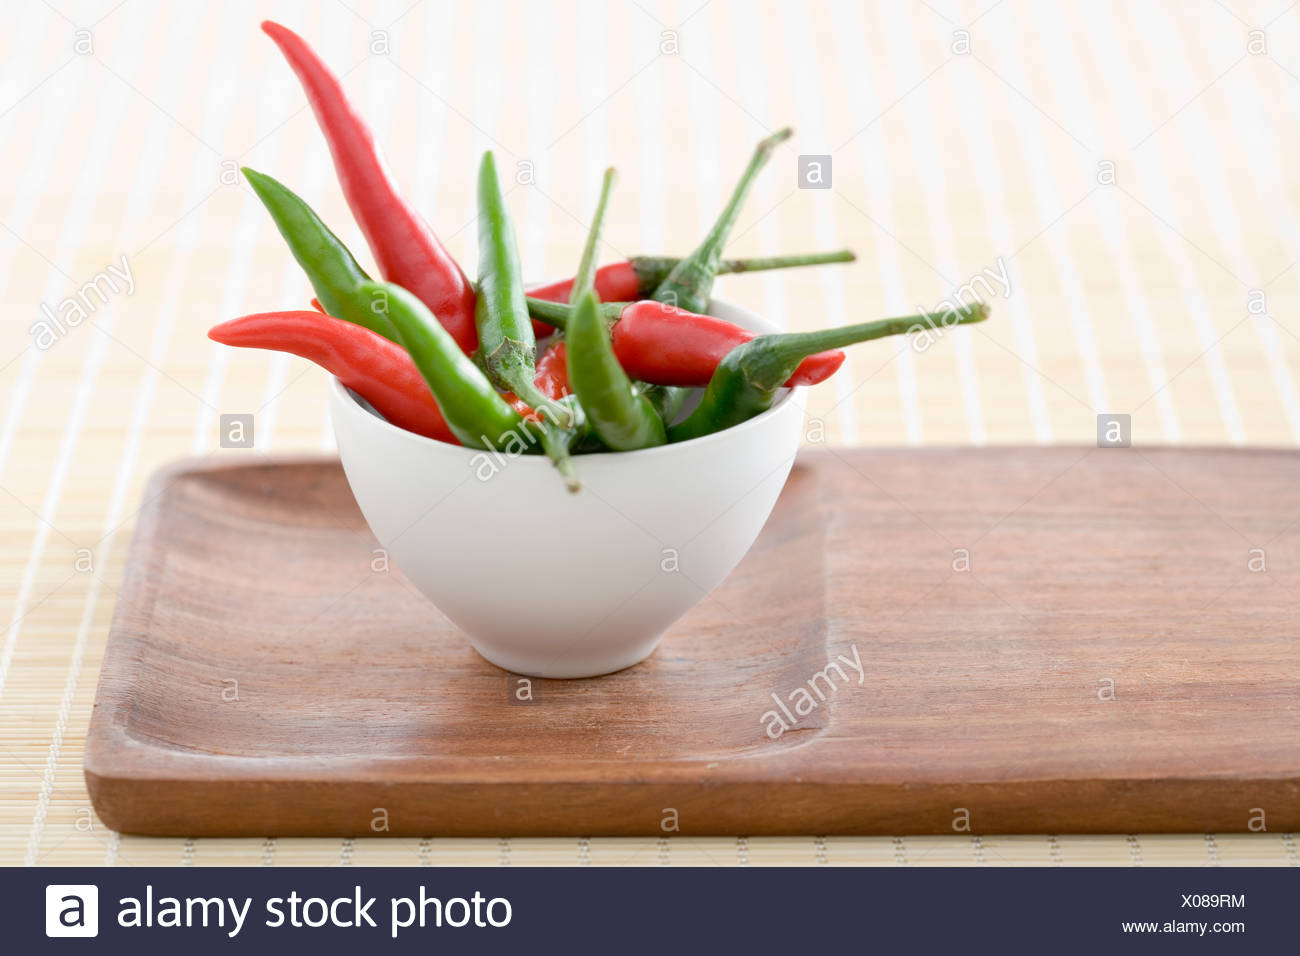 Chill peppers in a bowl - Stock Image